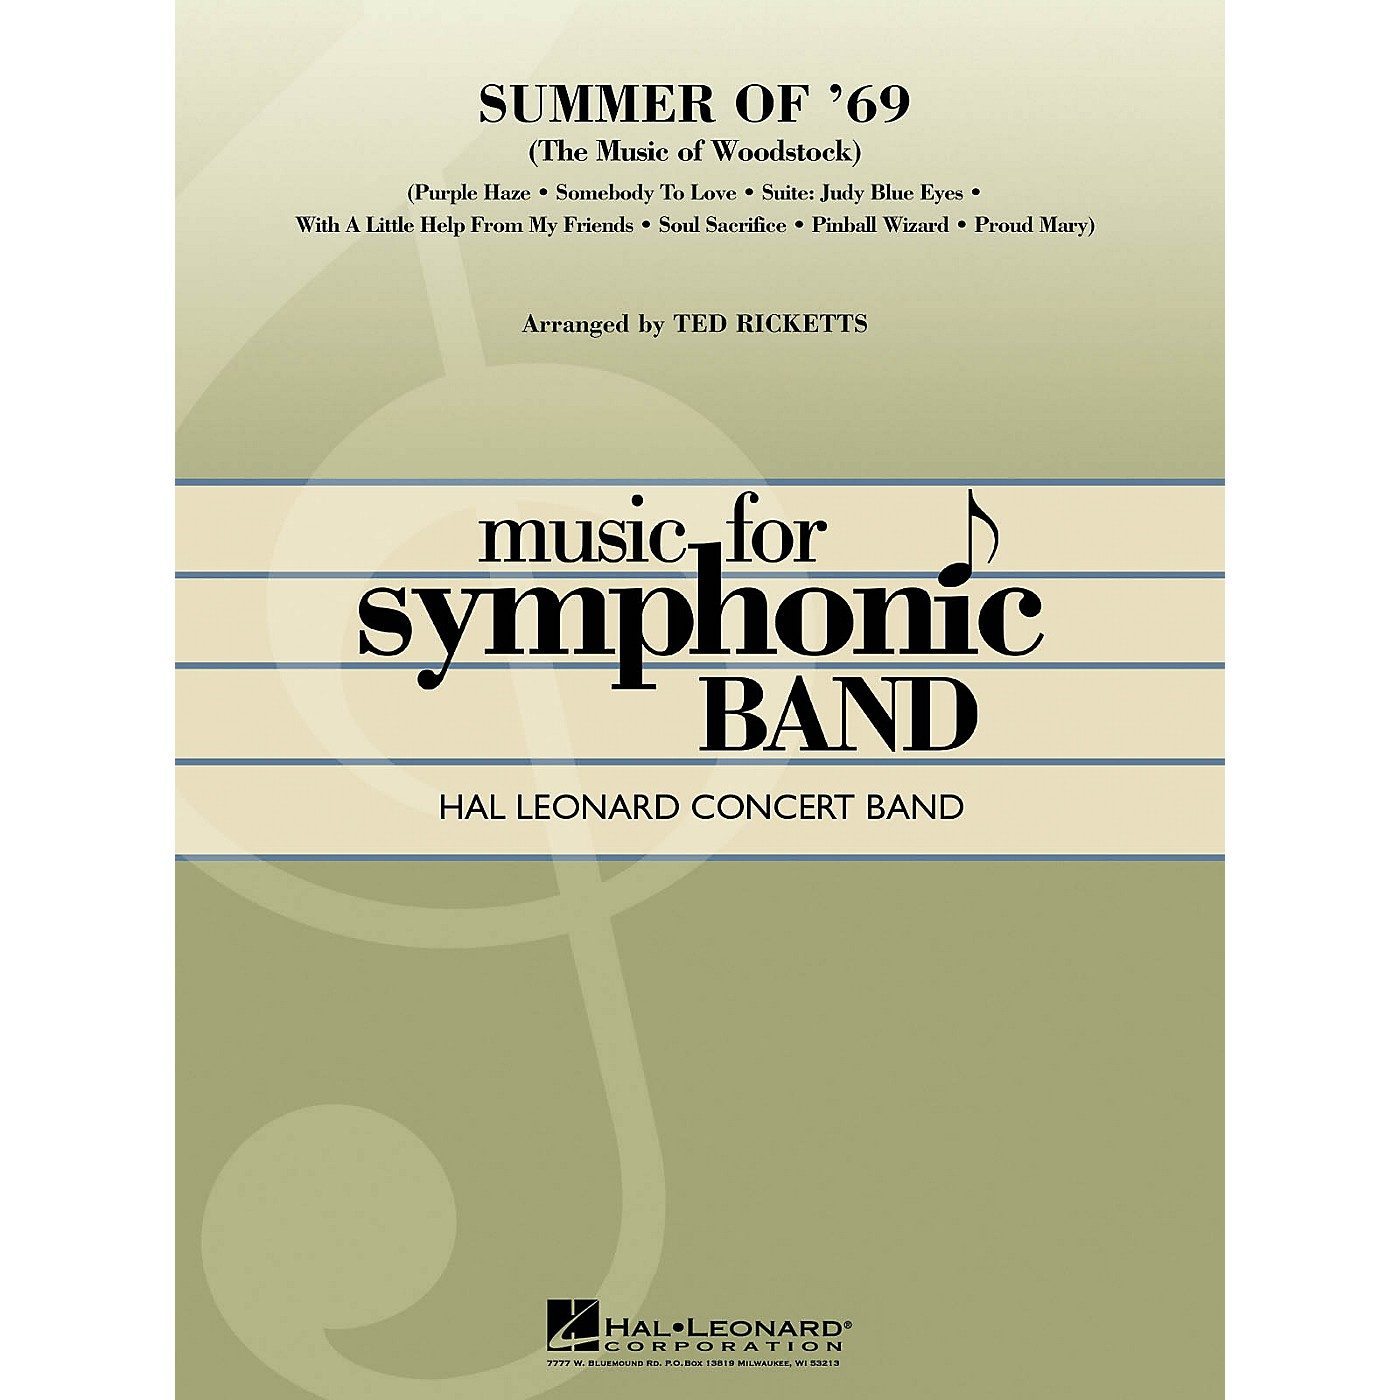 Hal Leonard Summer of '69 (The Music of Woodstock) Concert Band Level 4 Arranged by Ted Ricketts thumbnail